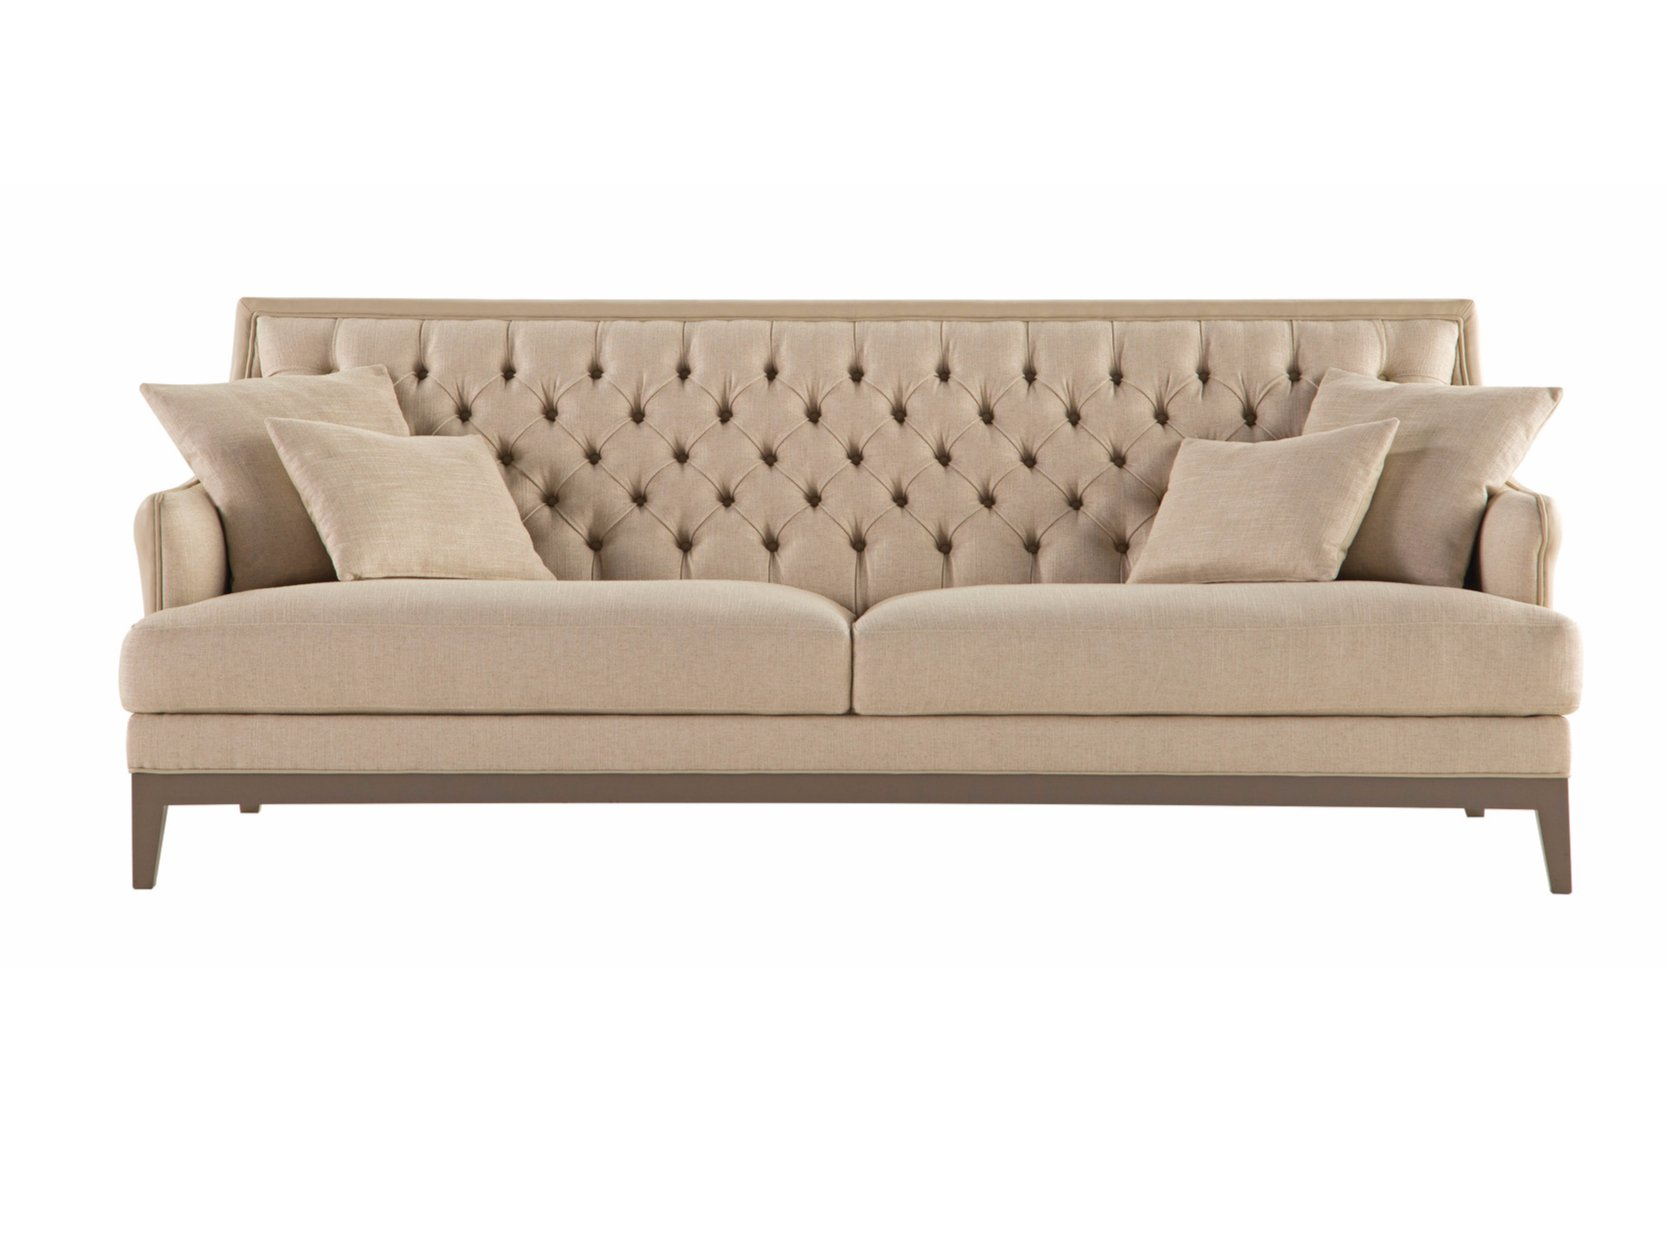 Epoq canap collection epoq by roche bobois design les - Canape capitonne cuir ...